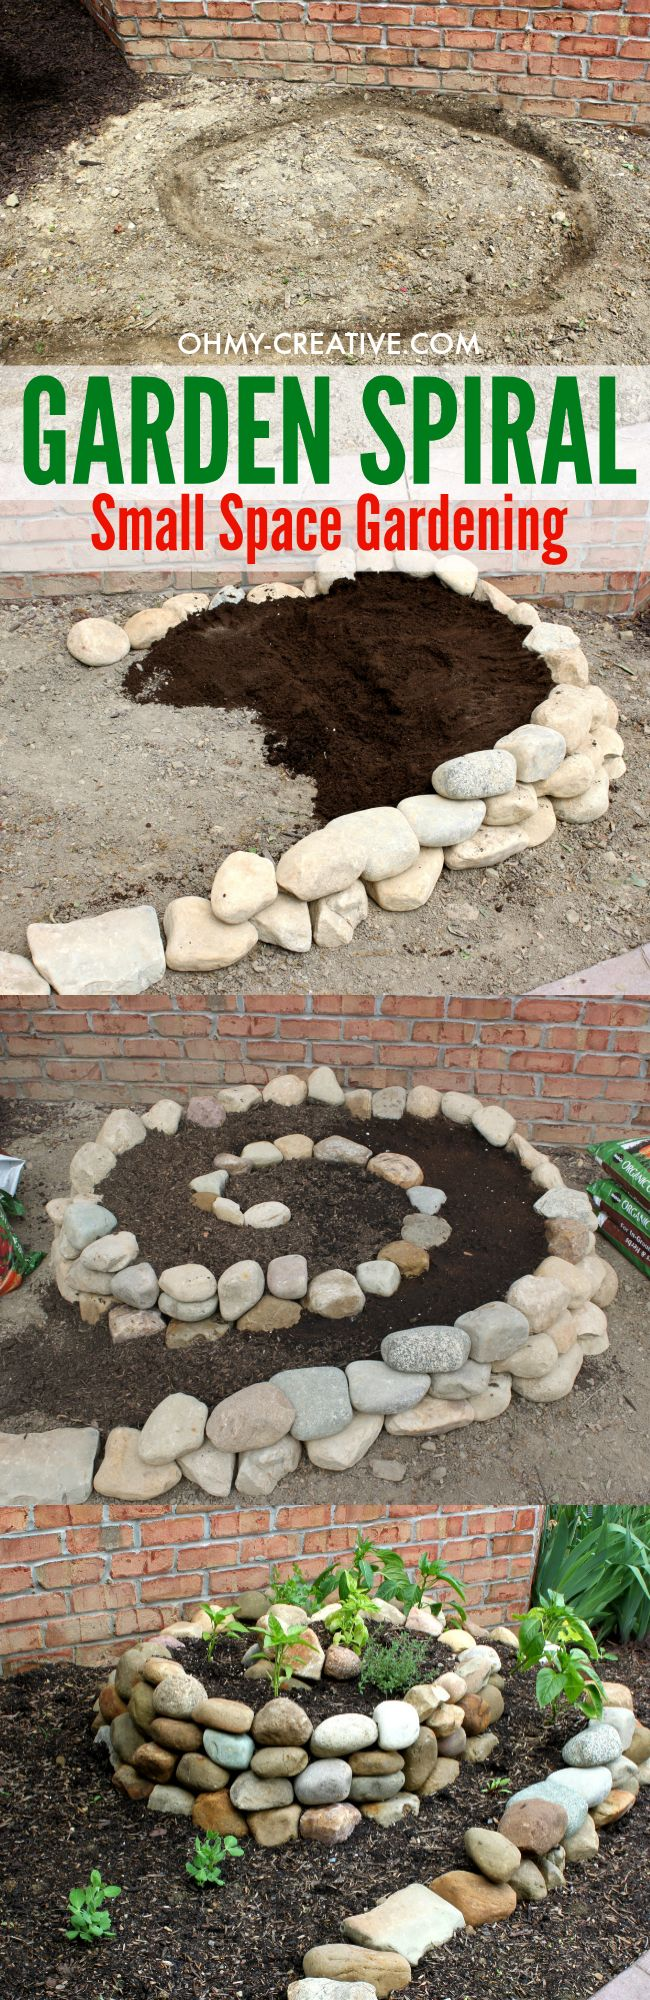 This Garden Spiral is a great way to create a vegetable garden when you only have a small space to work with. Plus it looks pretty in the yard - a great conversation piece!  |  OHMY-CREATIVE.COM #FlowerGardening